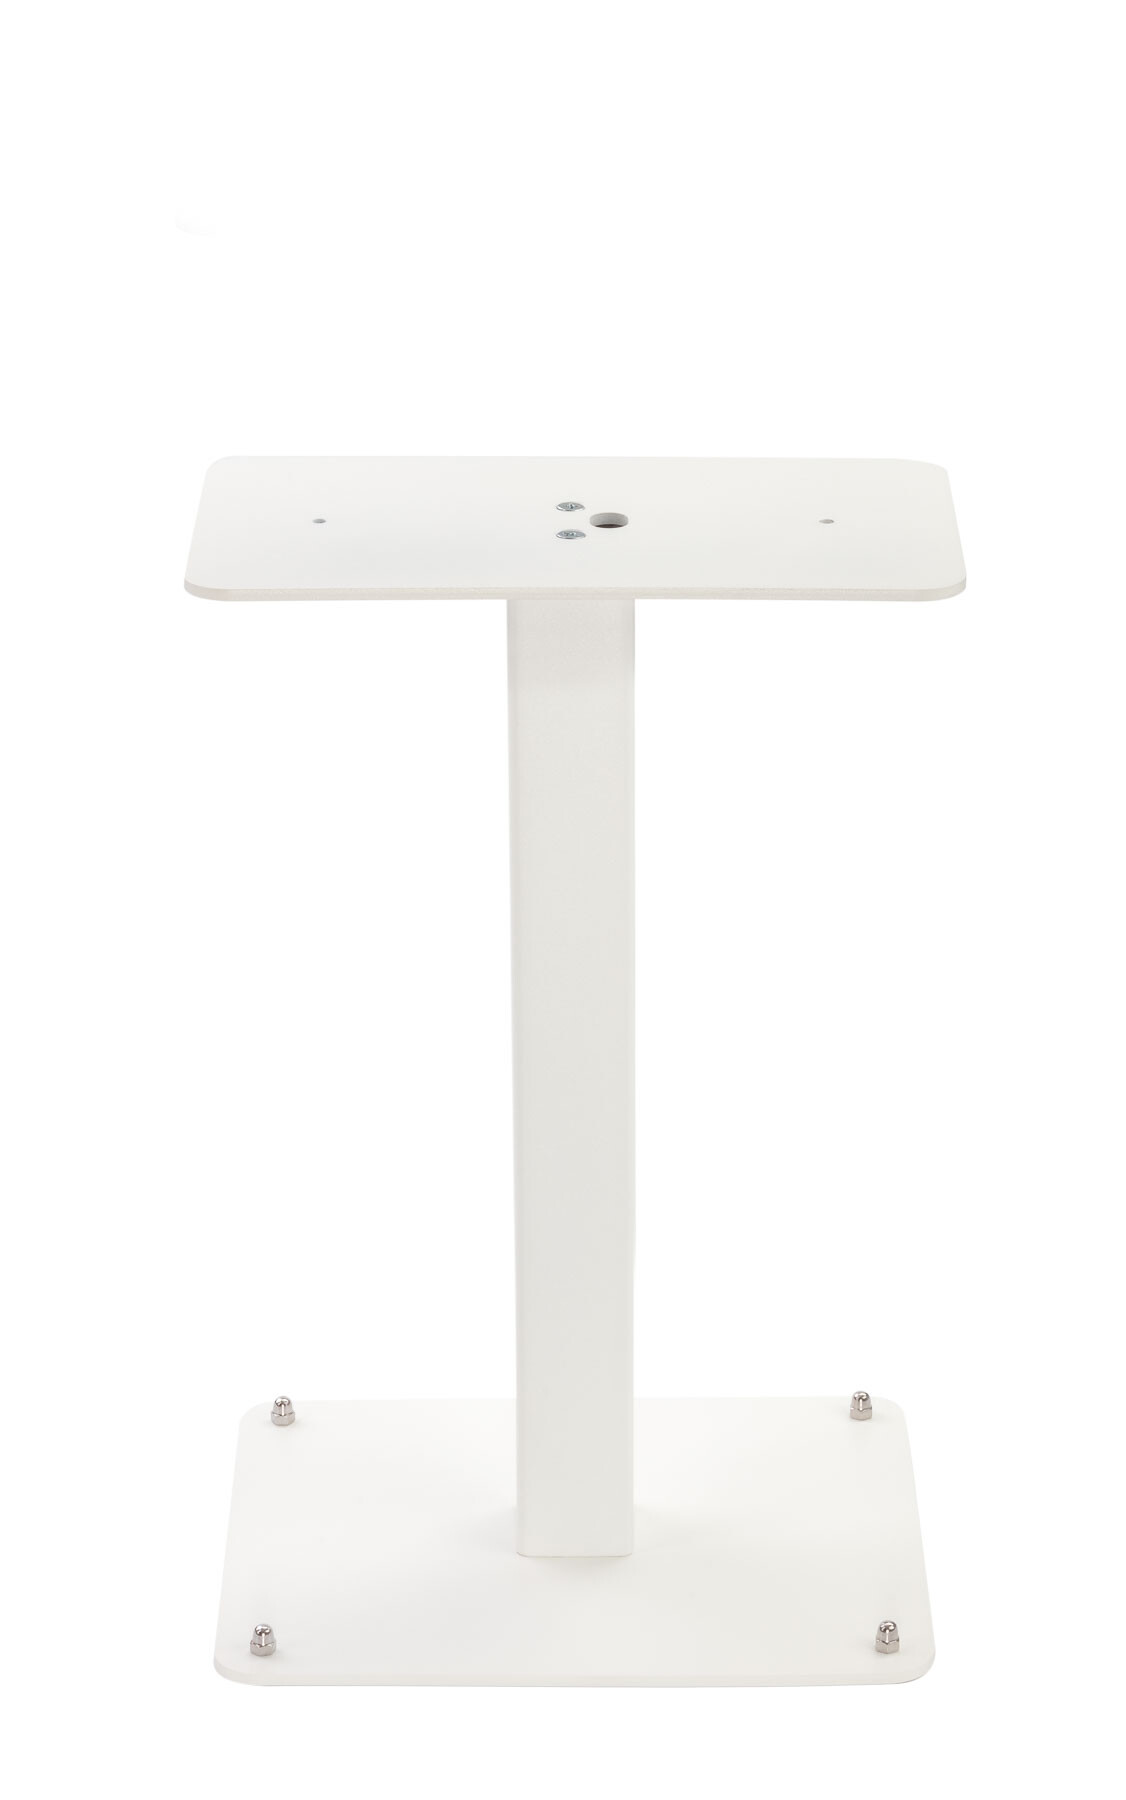 Adastra White speaker stand Medium - Product photo sample